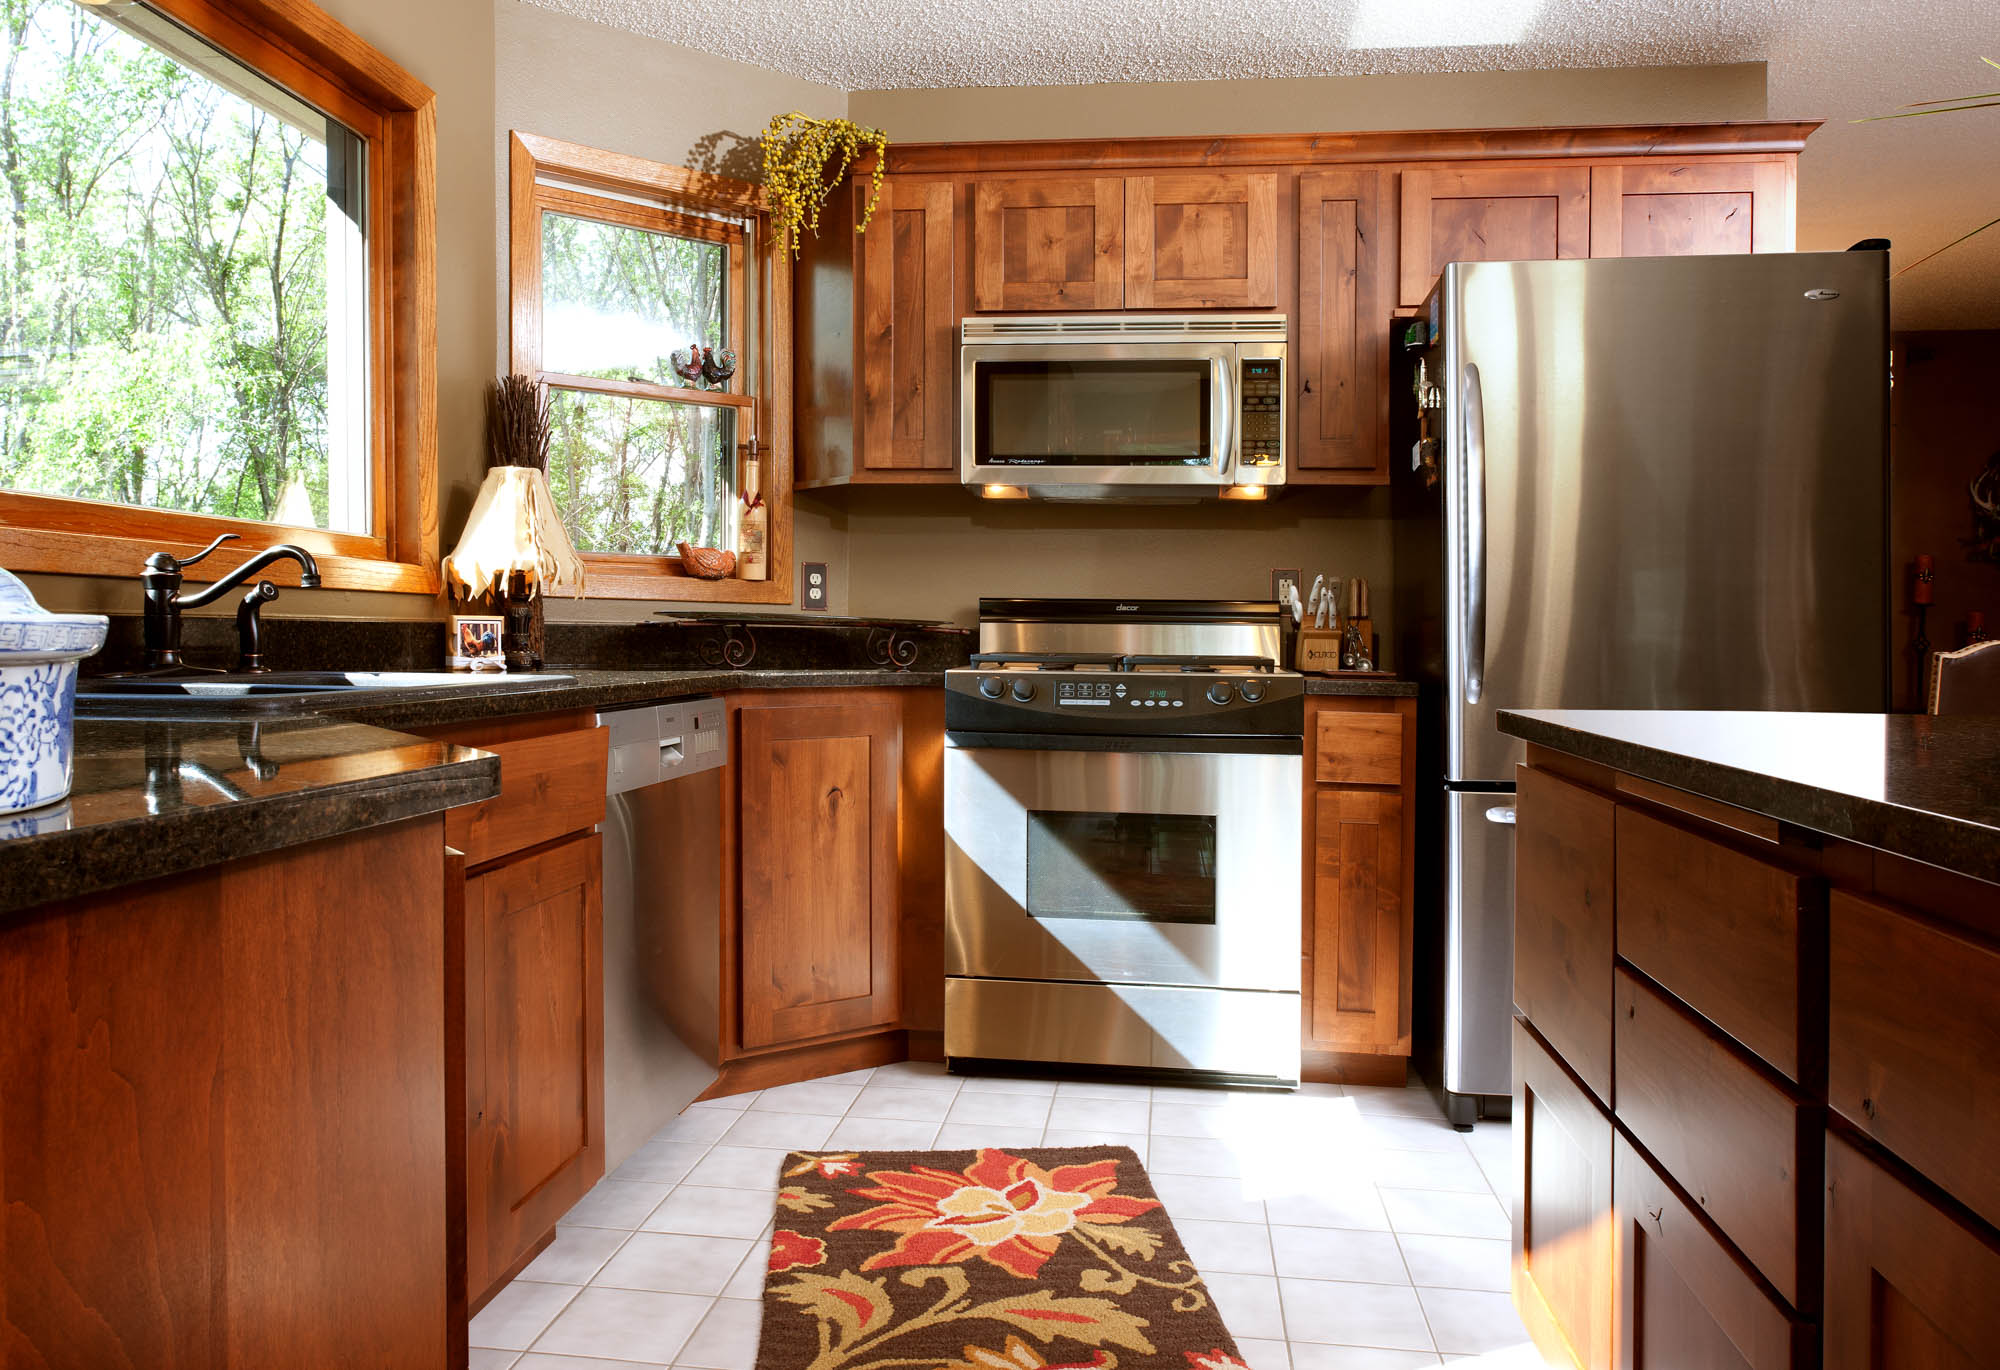 Renew | Stained kitchen cabinets in Autumn by Showplace Cabinetry - view 2